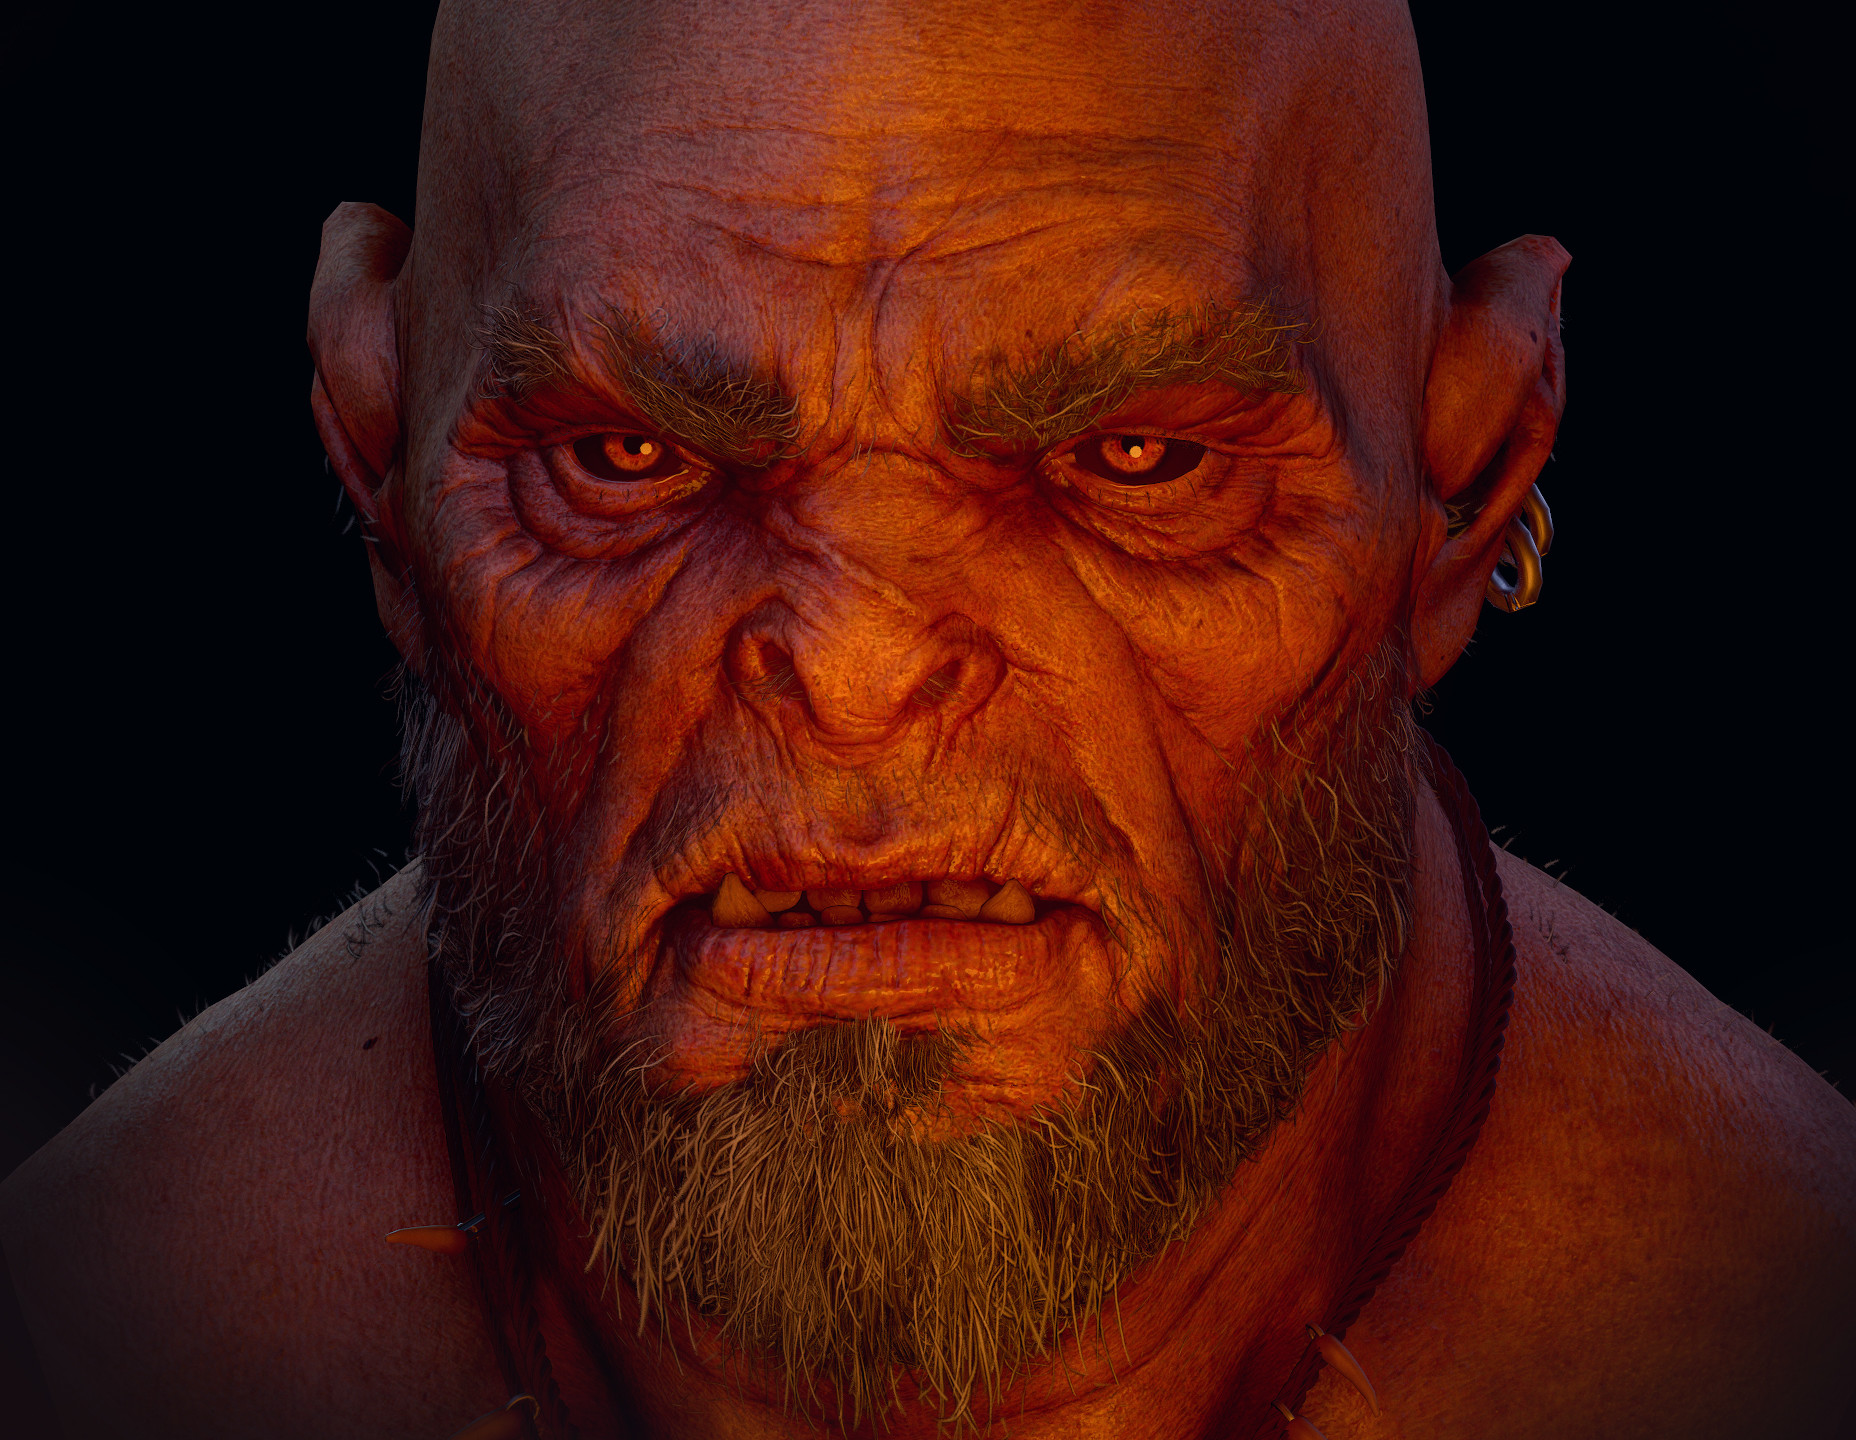 Andre mora orc1